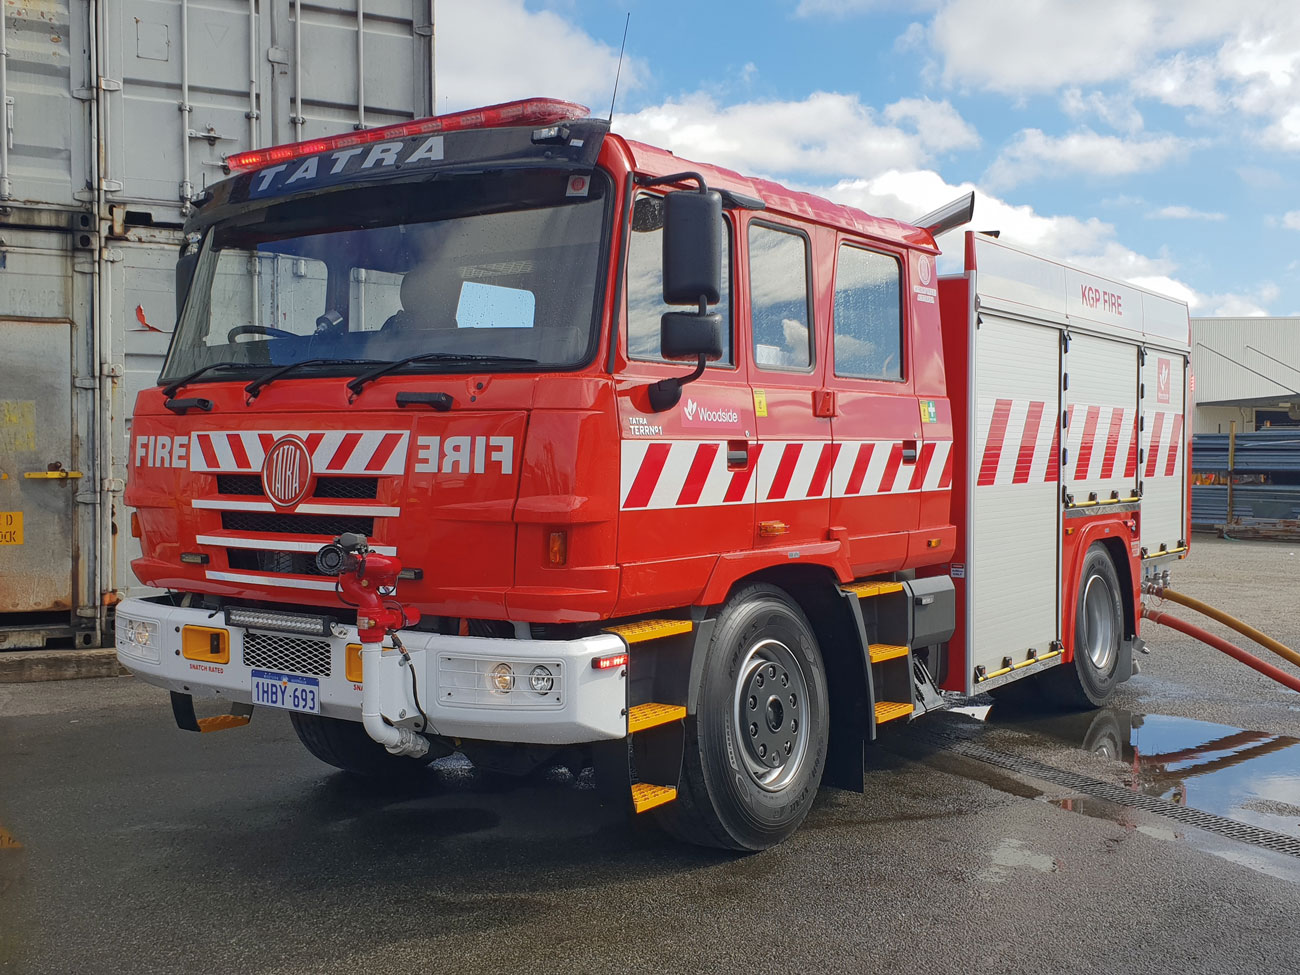 OTA's recent 4x4 fire appliance delivery to Woodside.